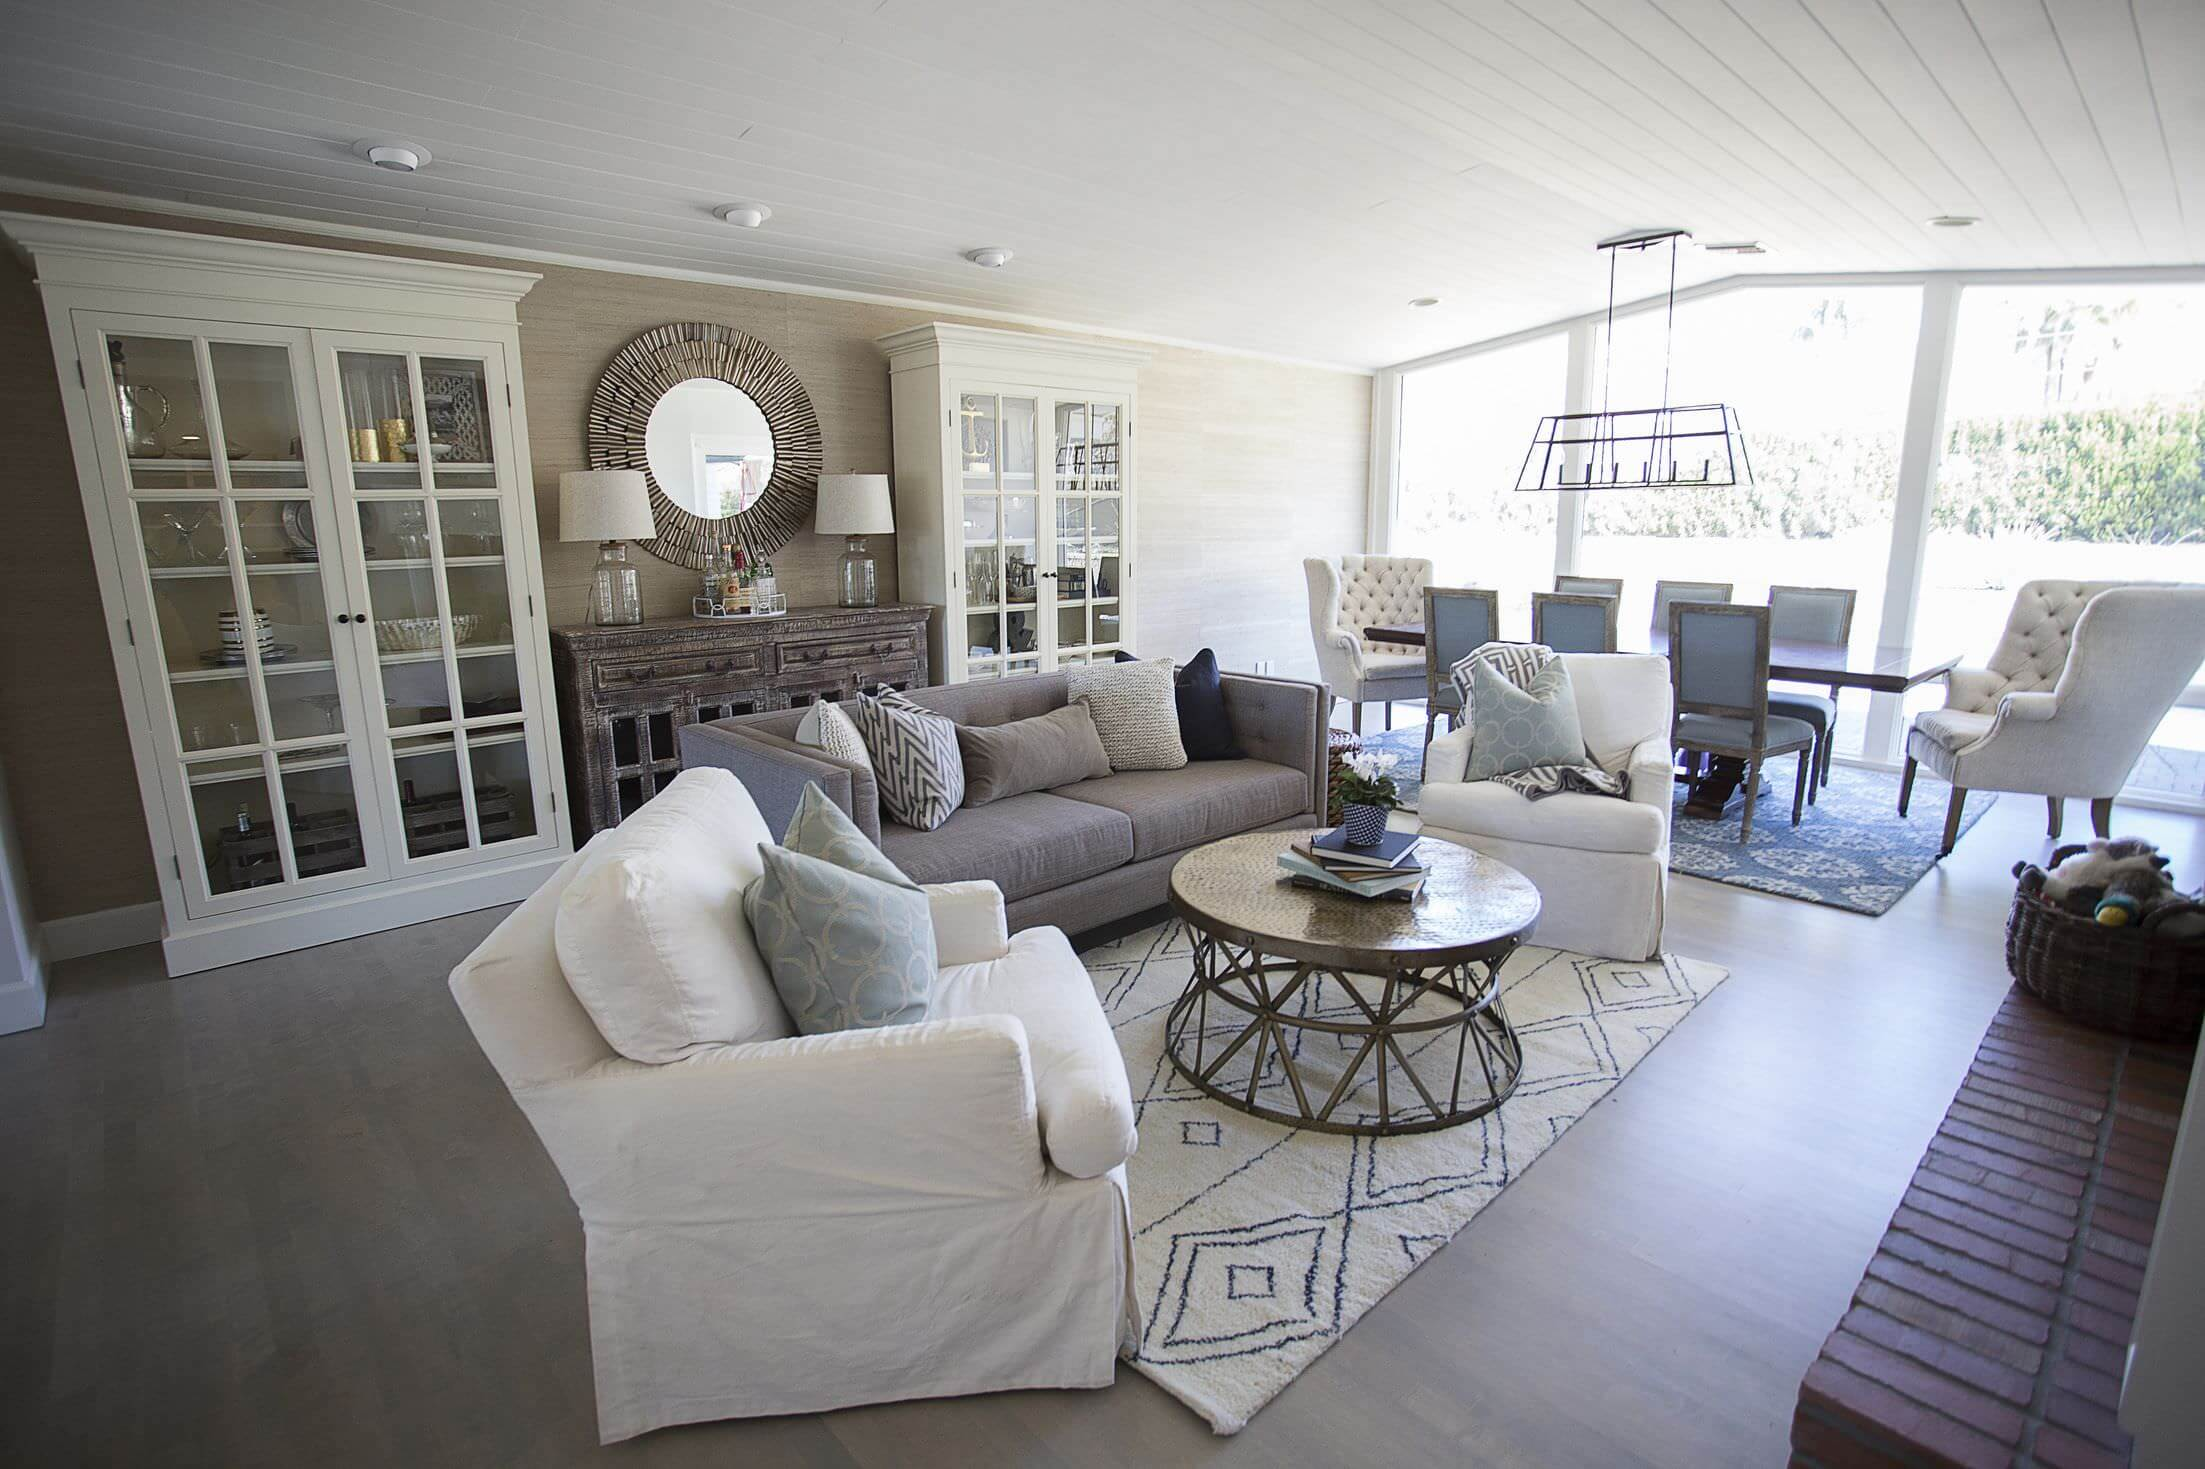 Large living space featuring a white cabinetry on the side and a set of comfy seats. There's a dining table set on the side as well.